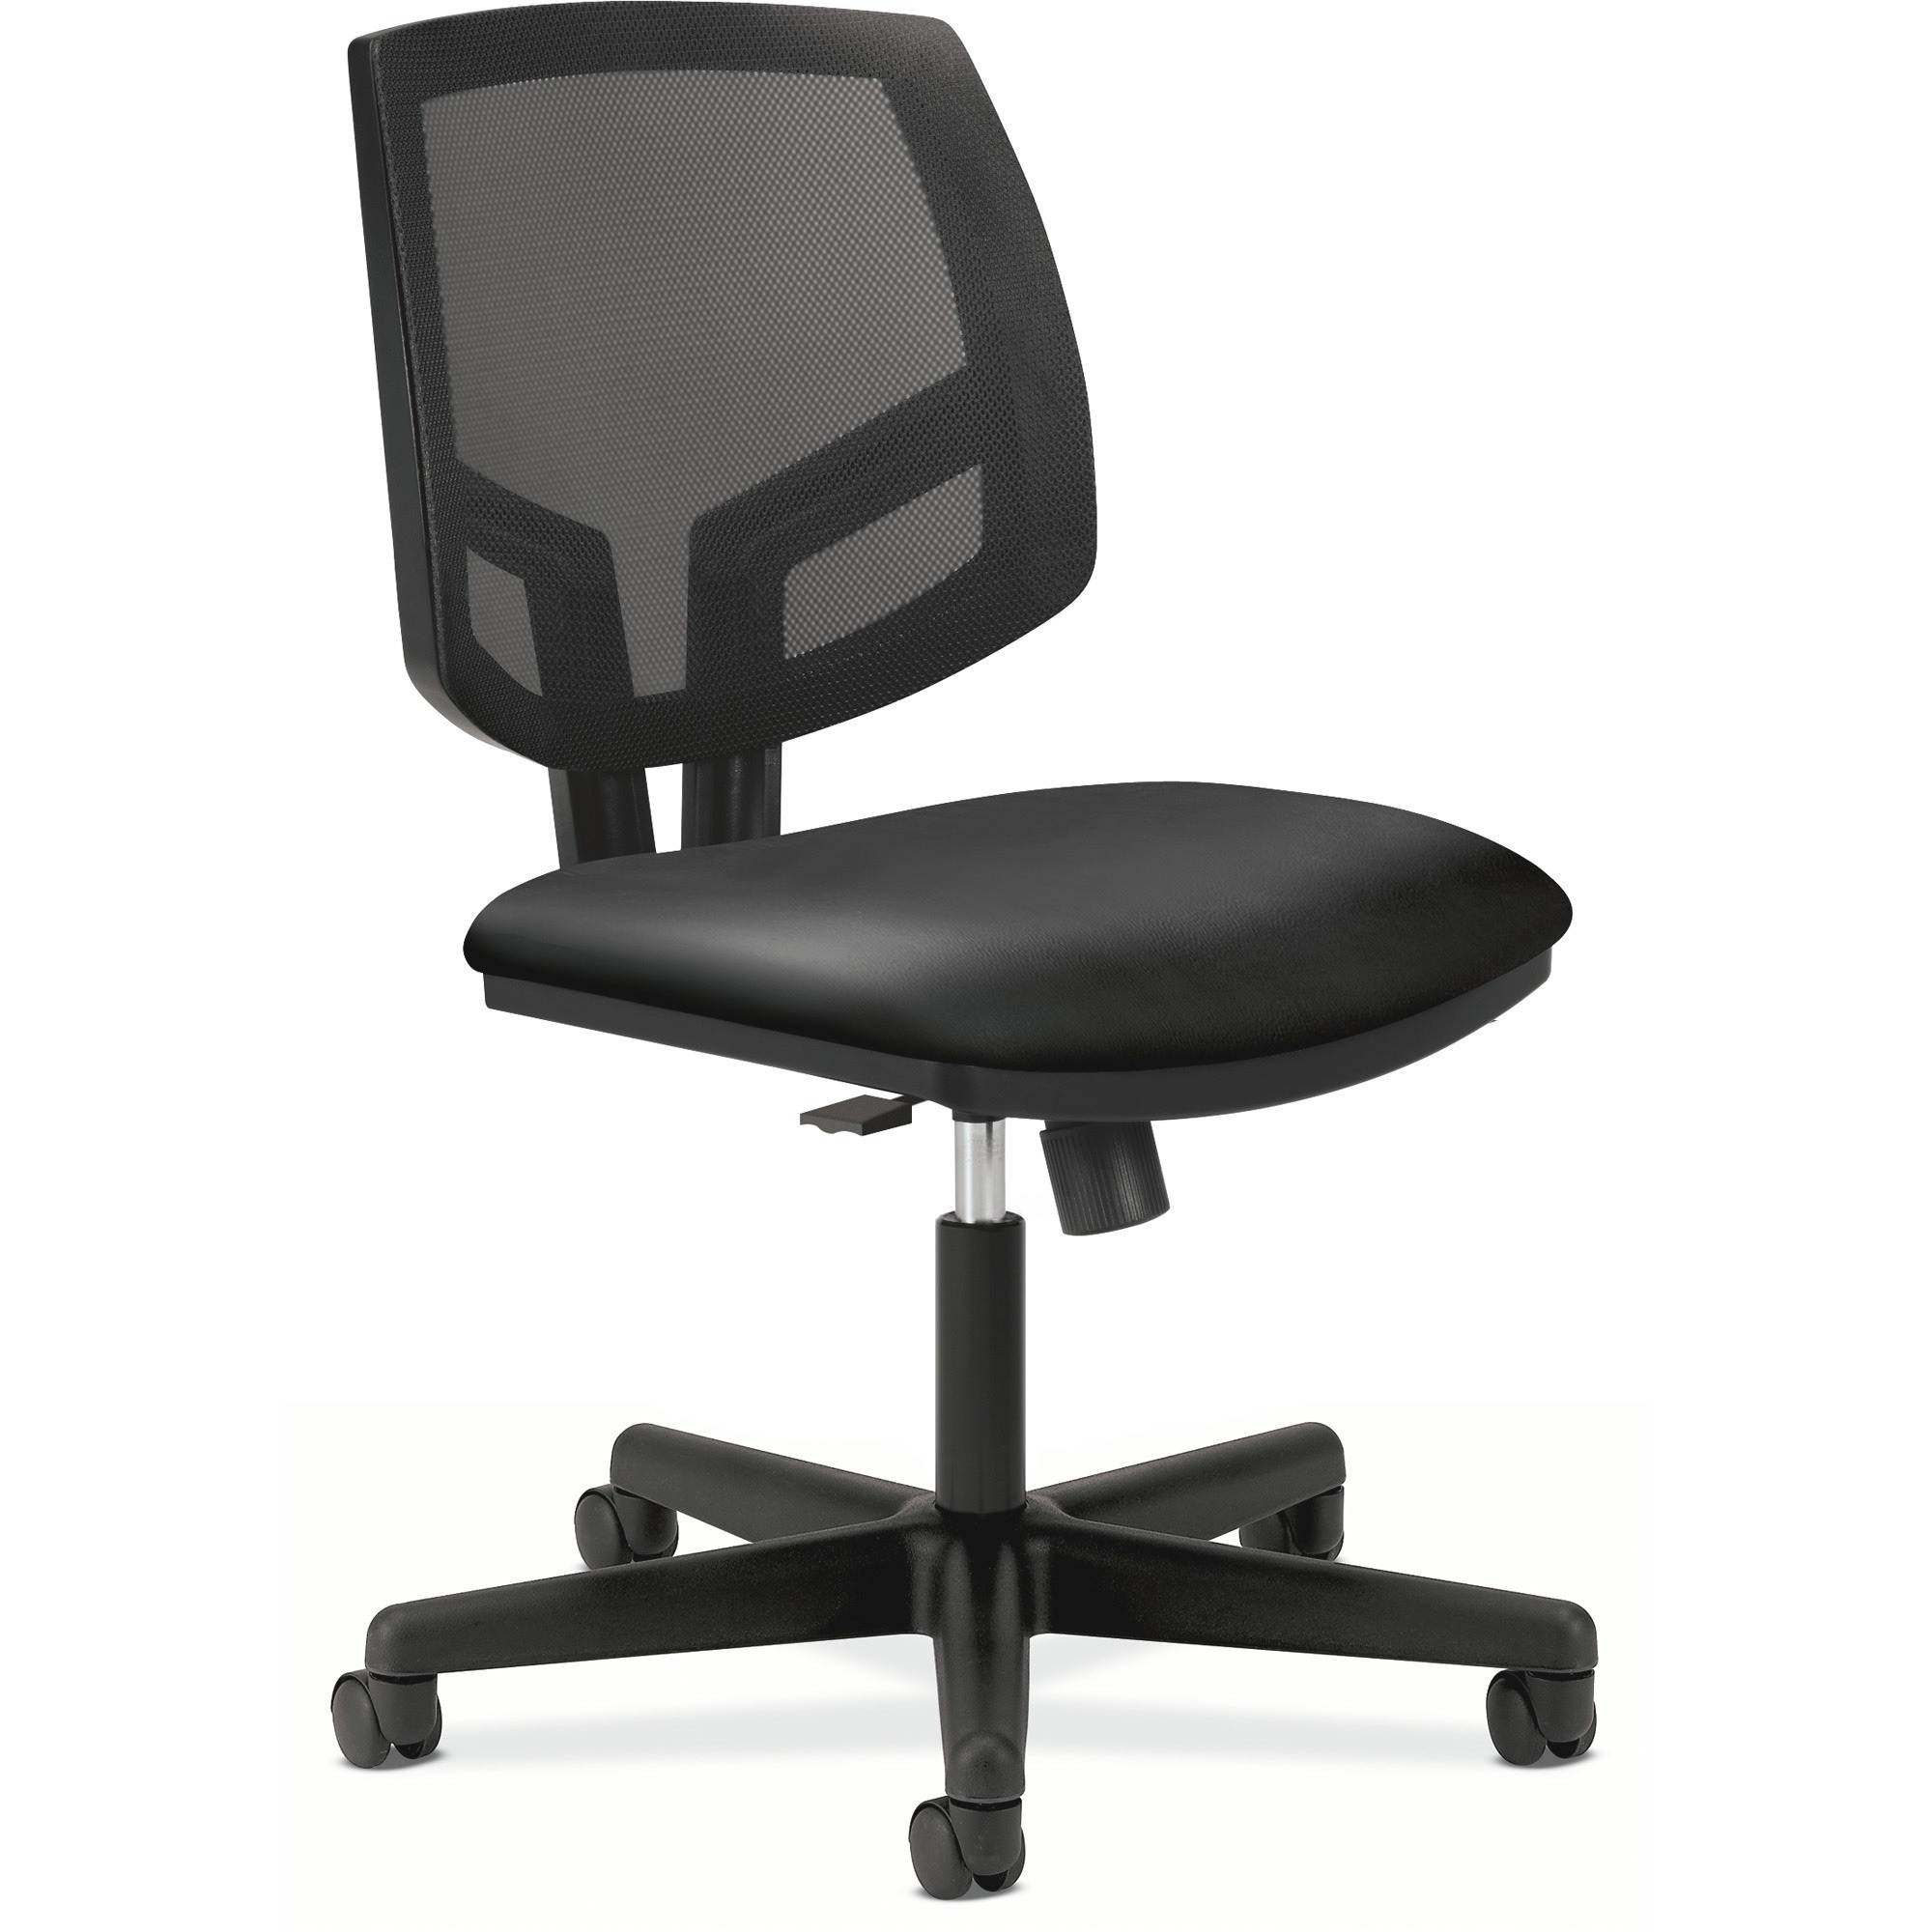 Selkirk Cellulars & fice Supplies Corp Furniture Chairs